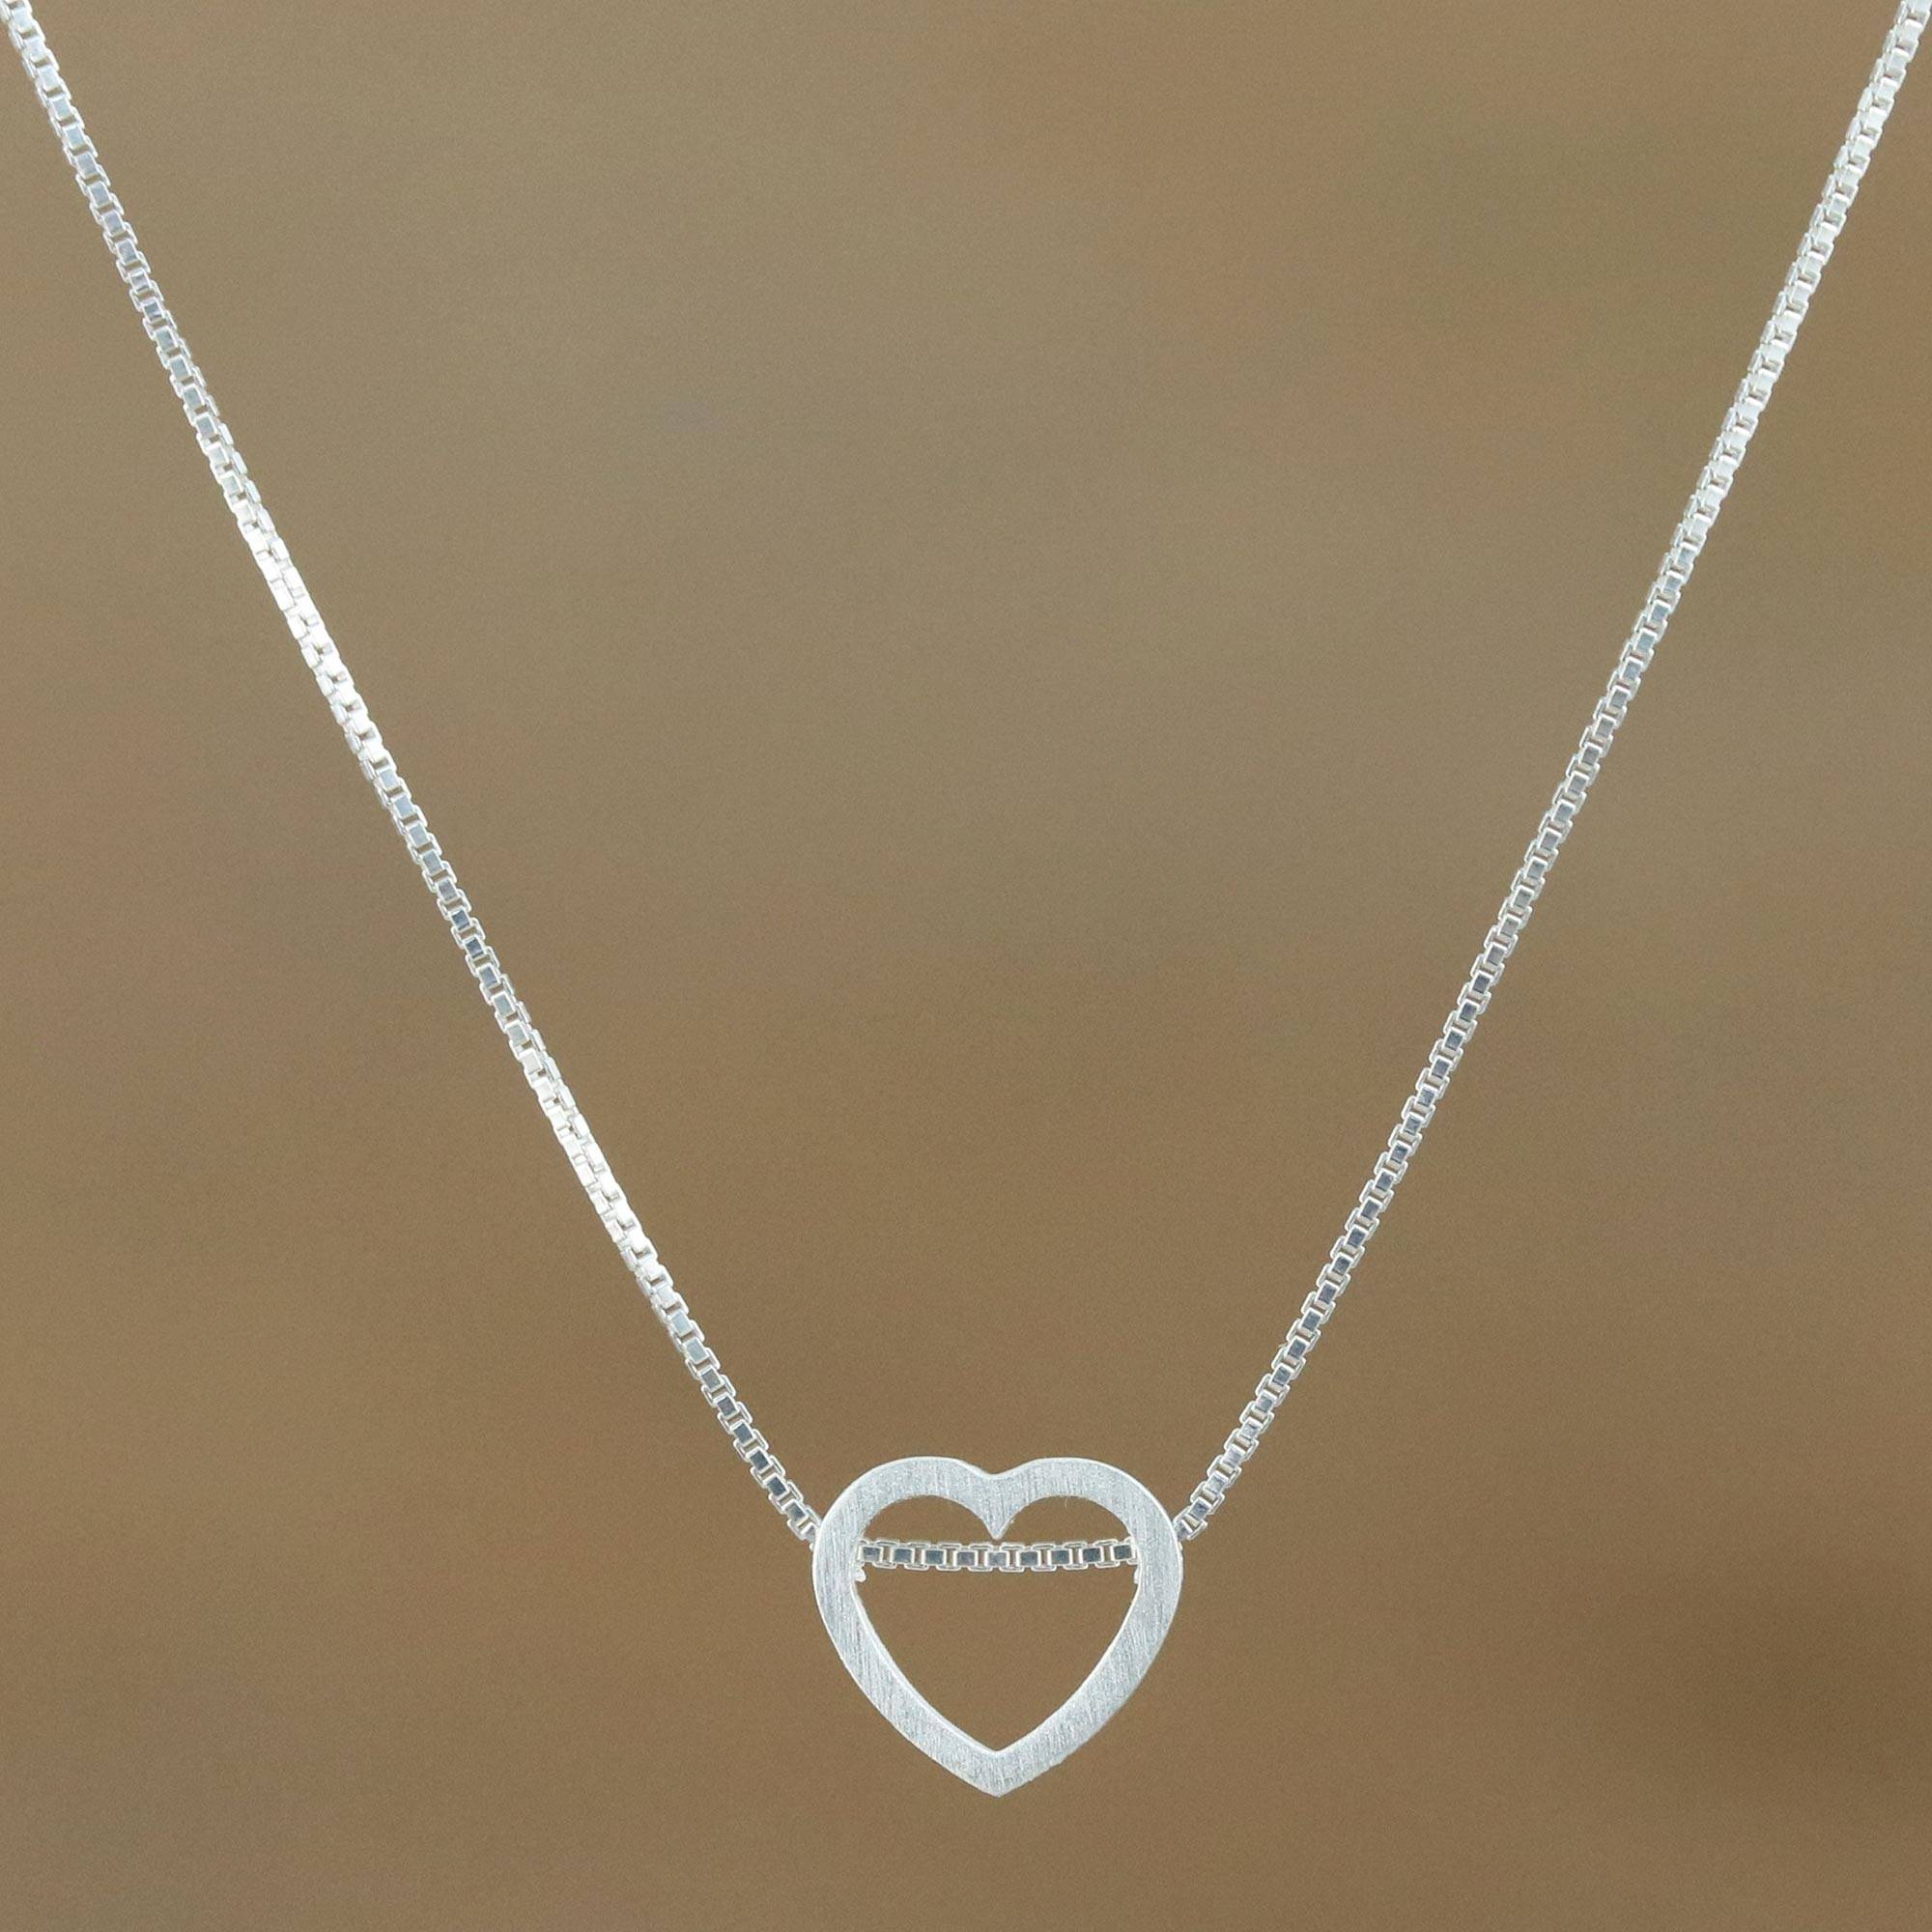 Sterling Silver Heart Pendant Necklace From Thailand Open To